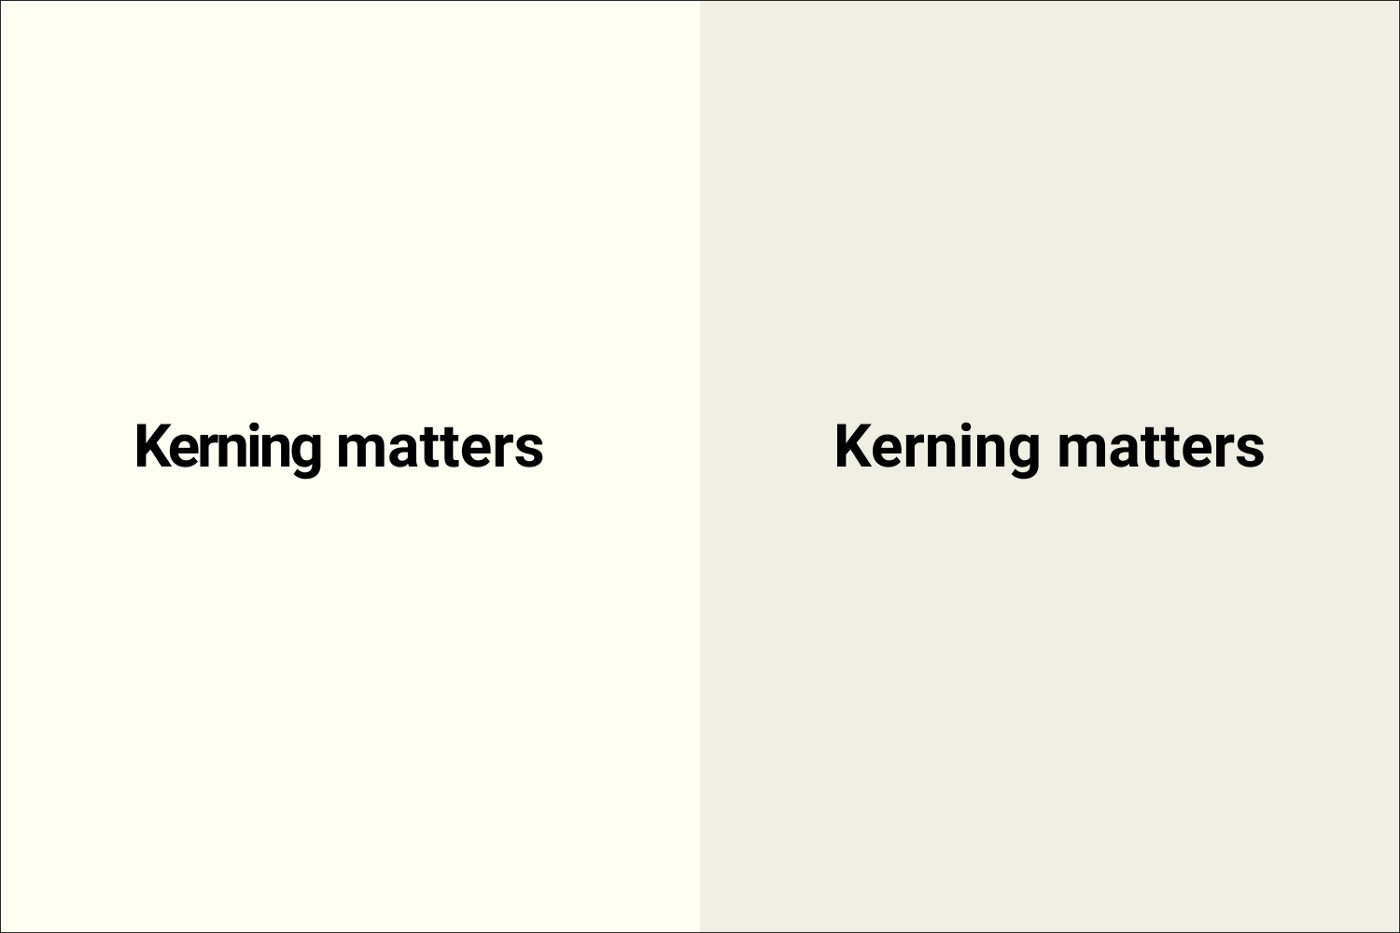 Image showing how kerning matters and how bad kerning can chagne the meaning of a word